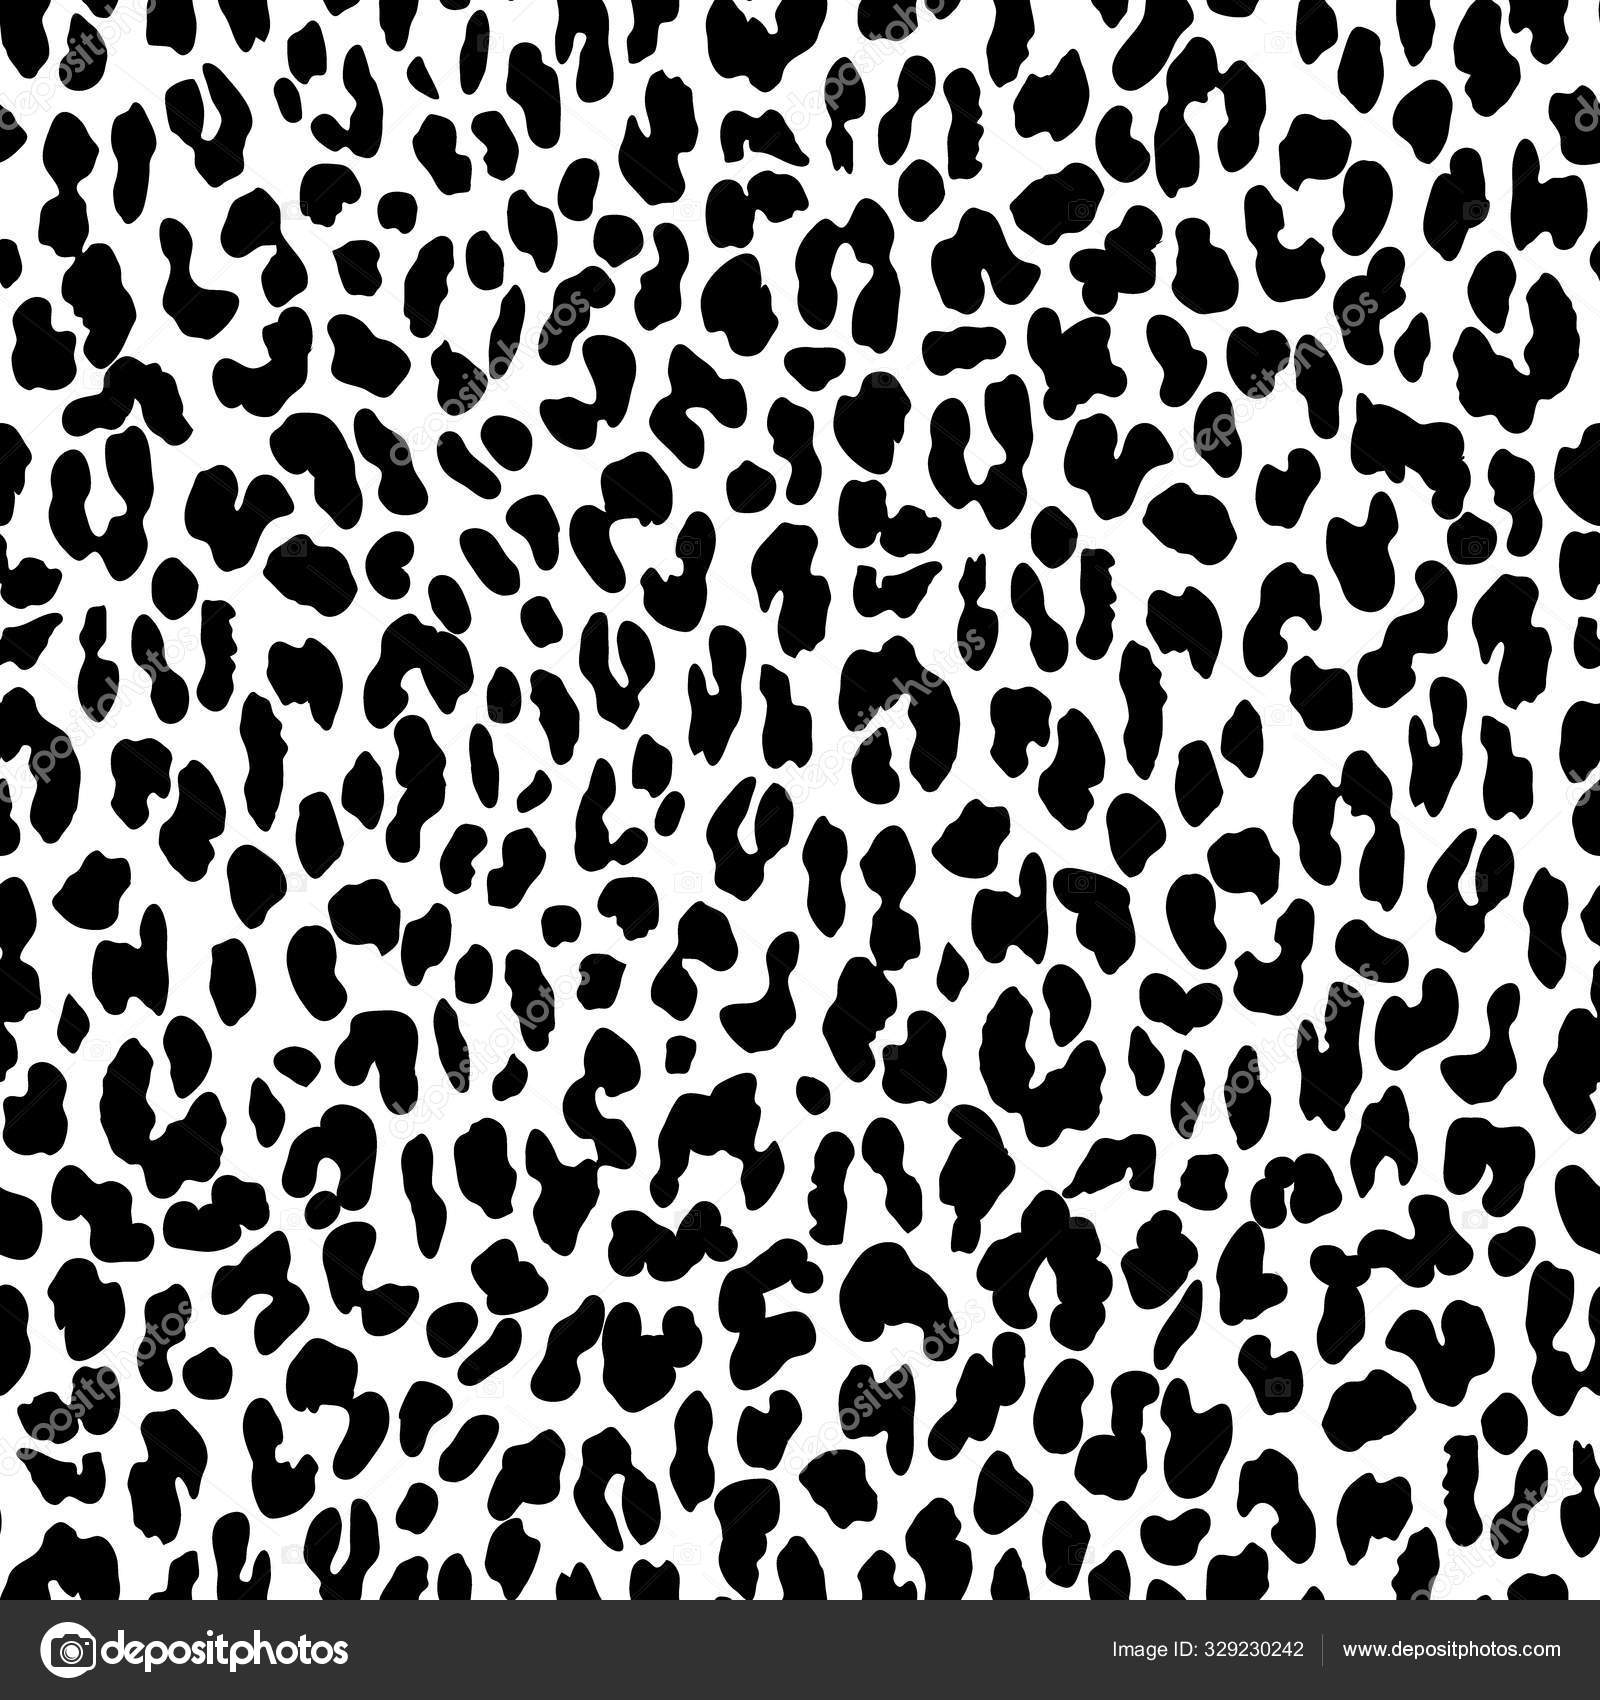 Seamless animal print with jaguar spots. Stock Vector Image by ...